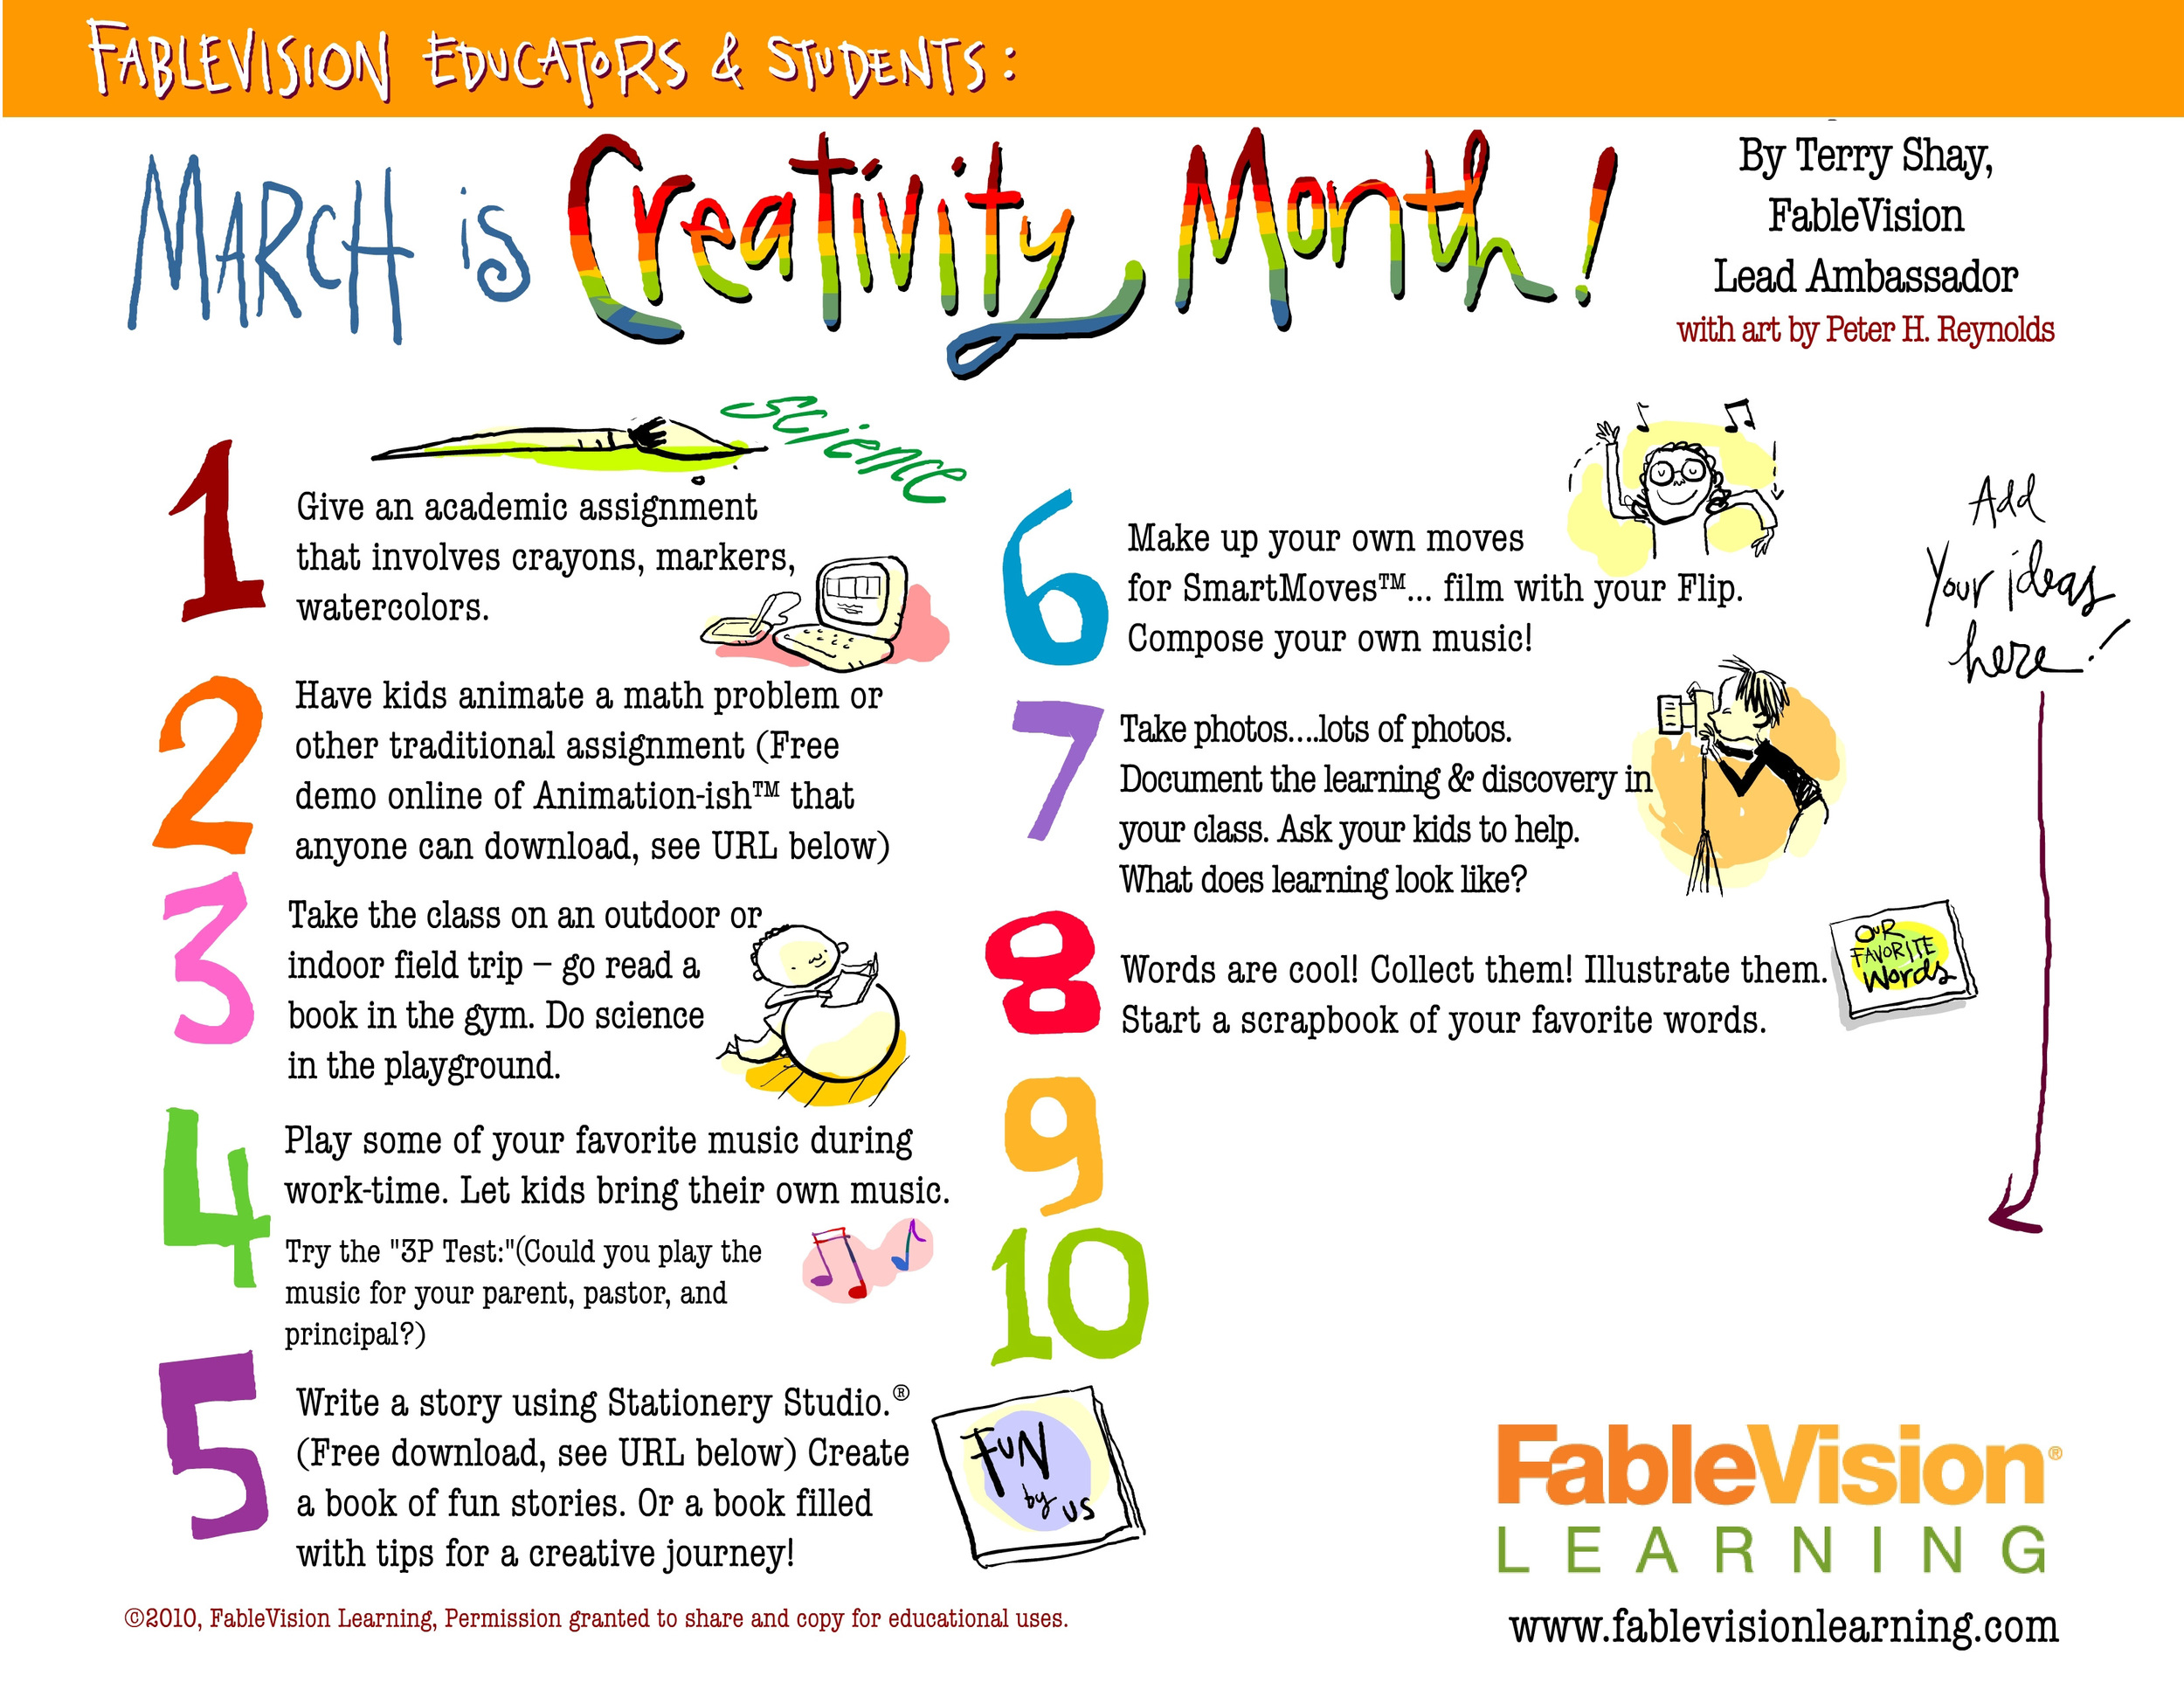 Poster - Creativity Month